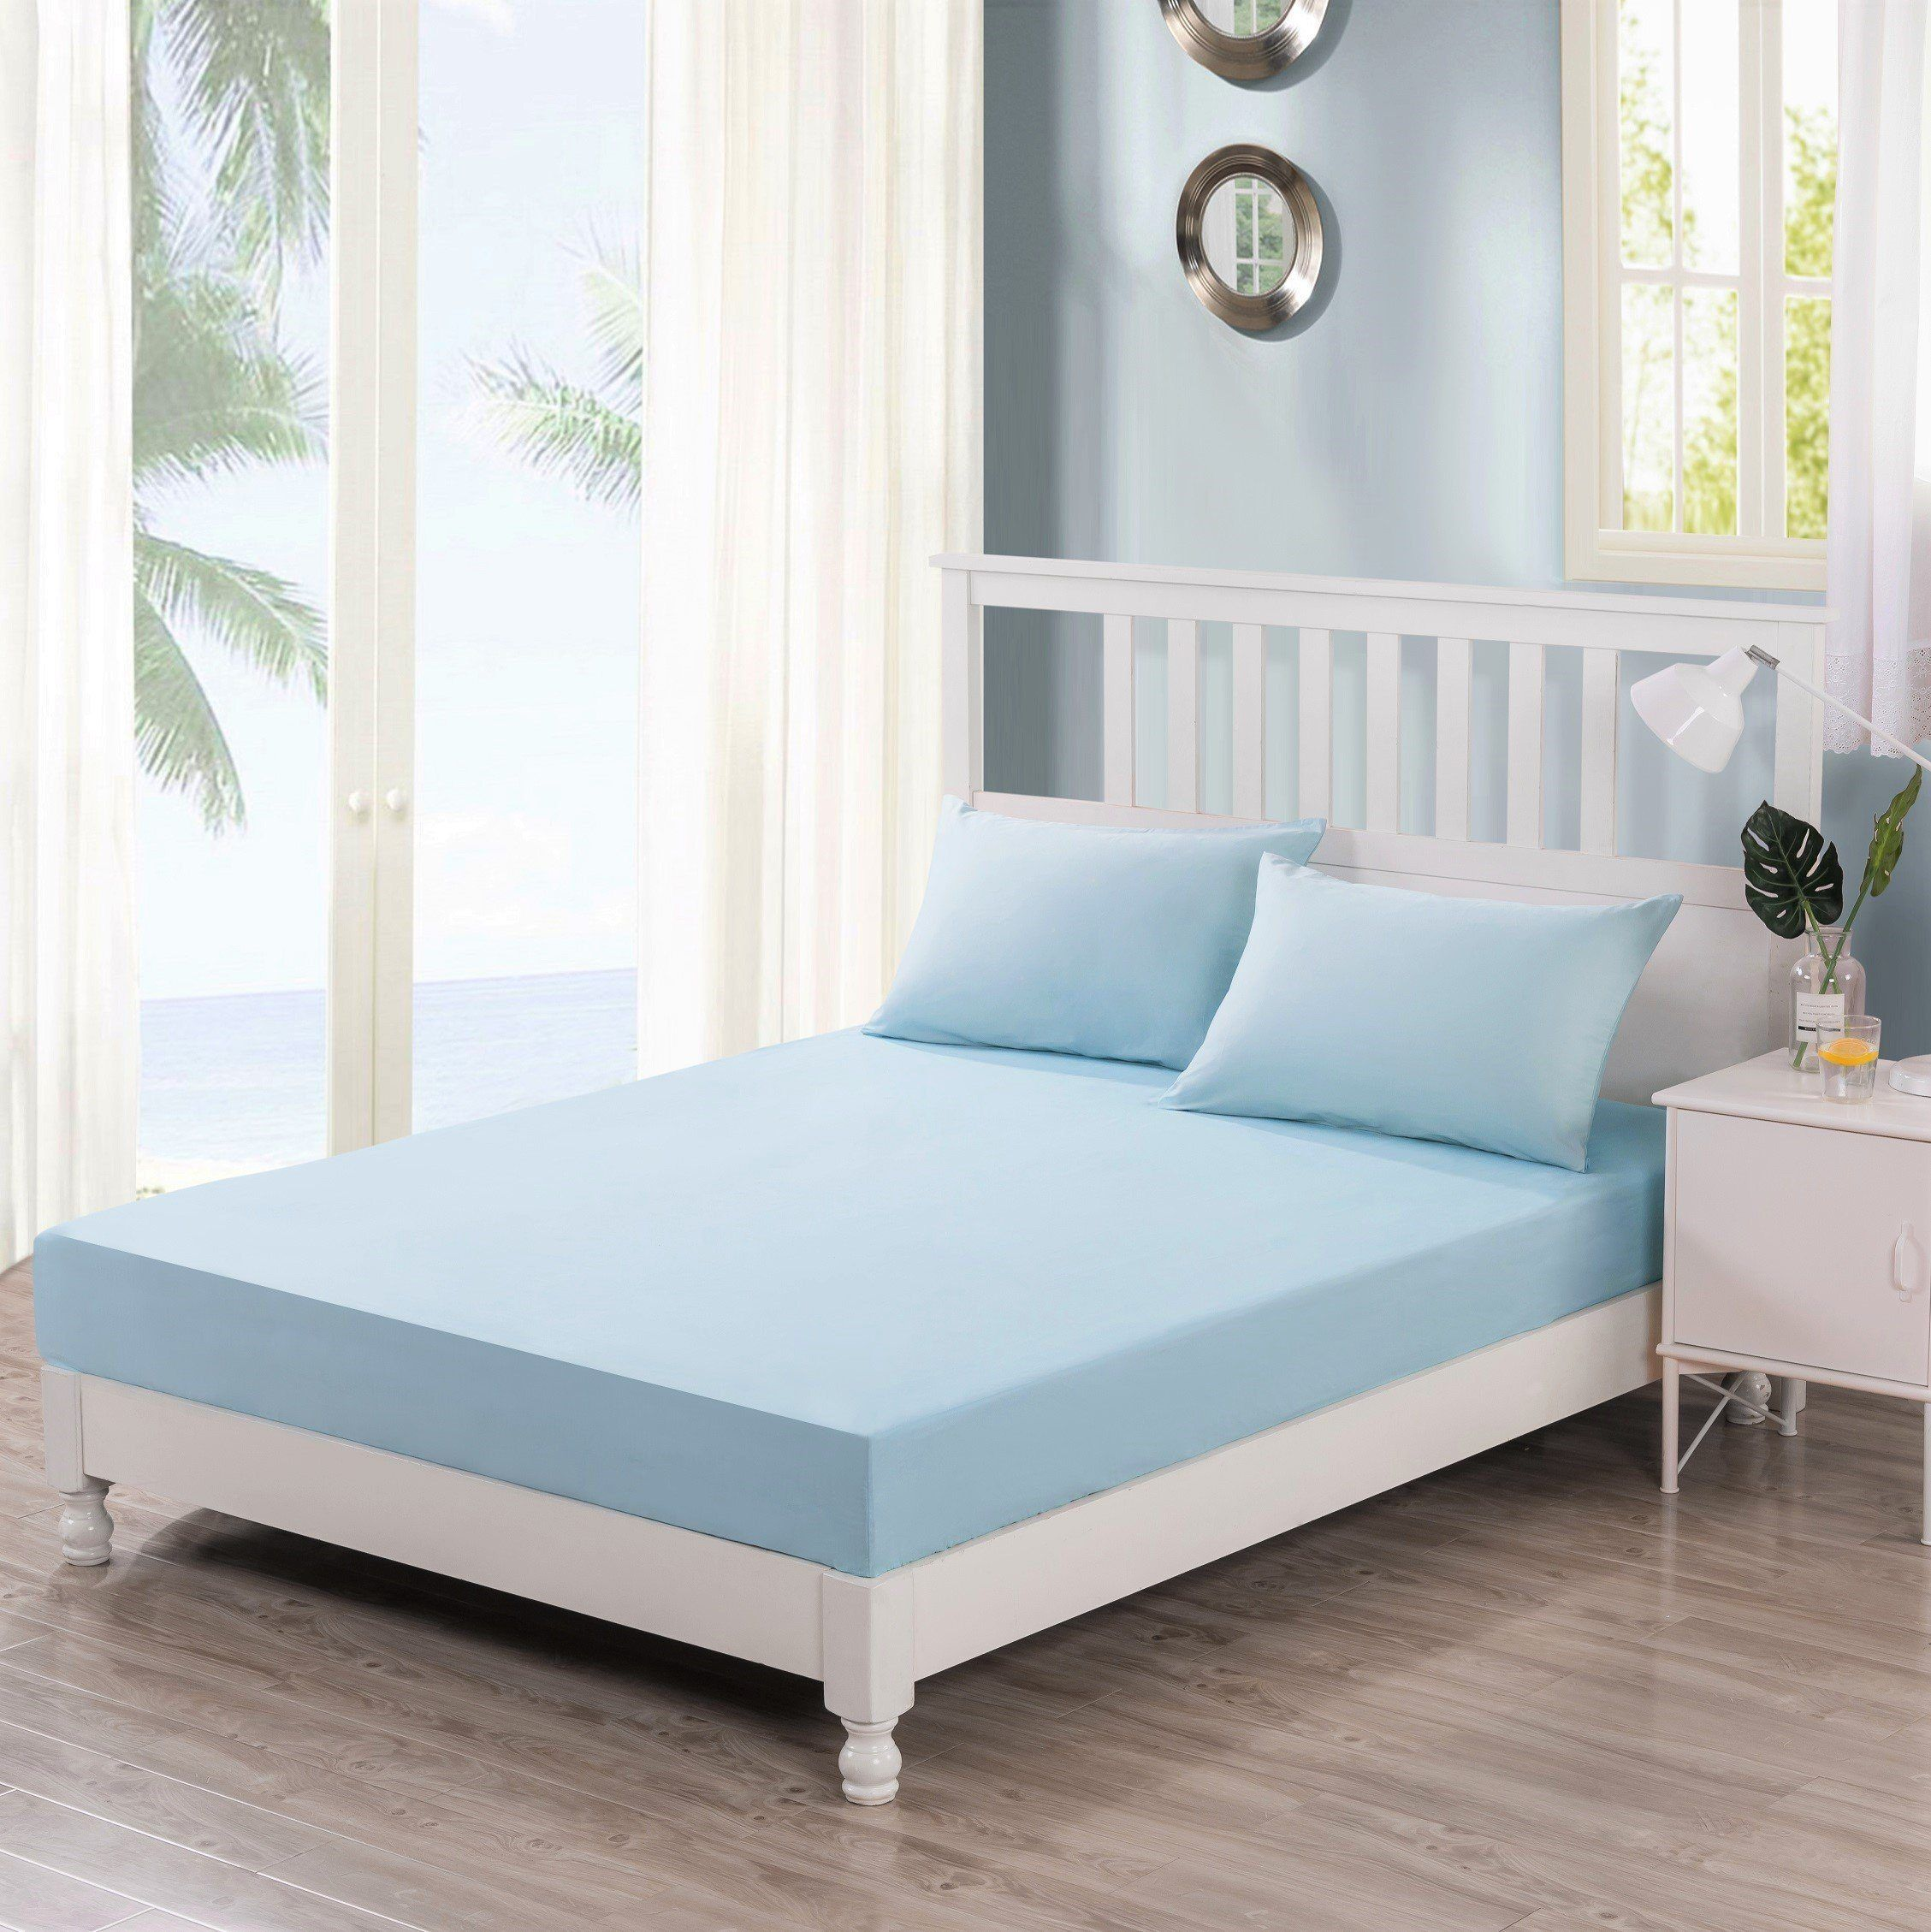 DaDa Bedding Baby Blue 100% Cotton Fitted Bed Sheet & W/Pillow Cases Set - Aiko 360